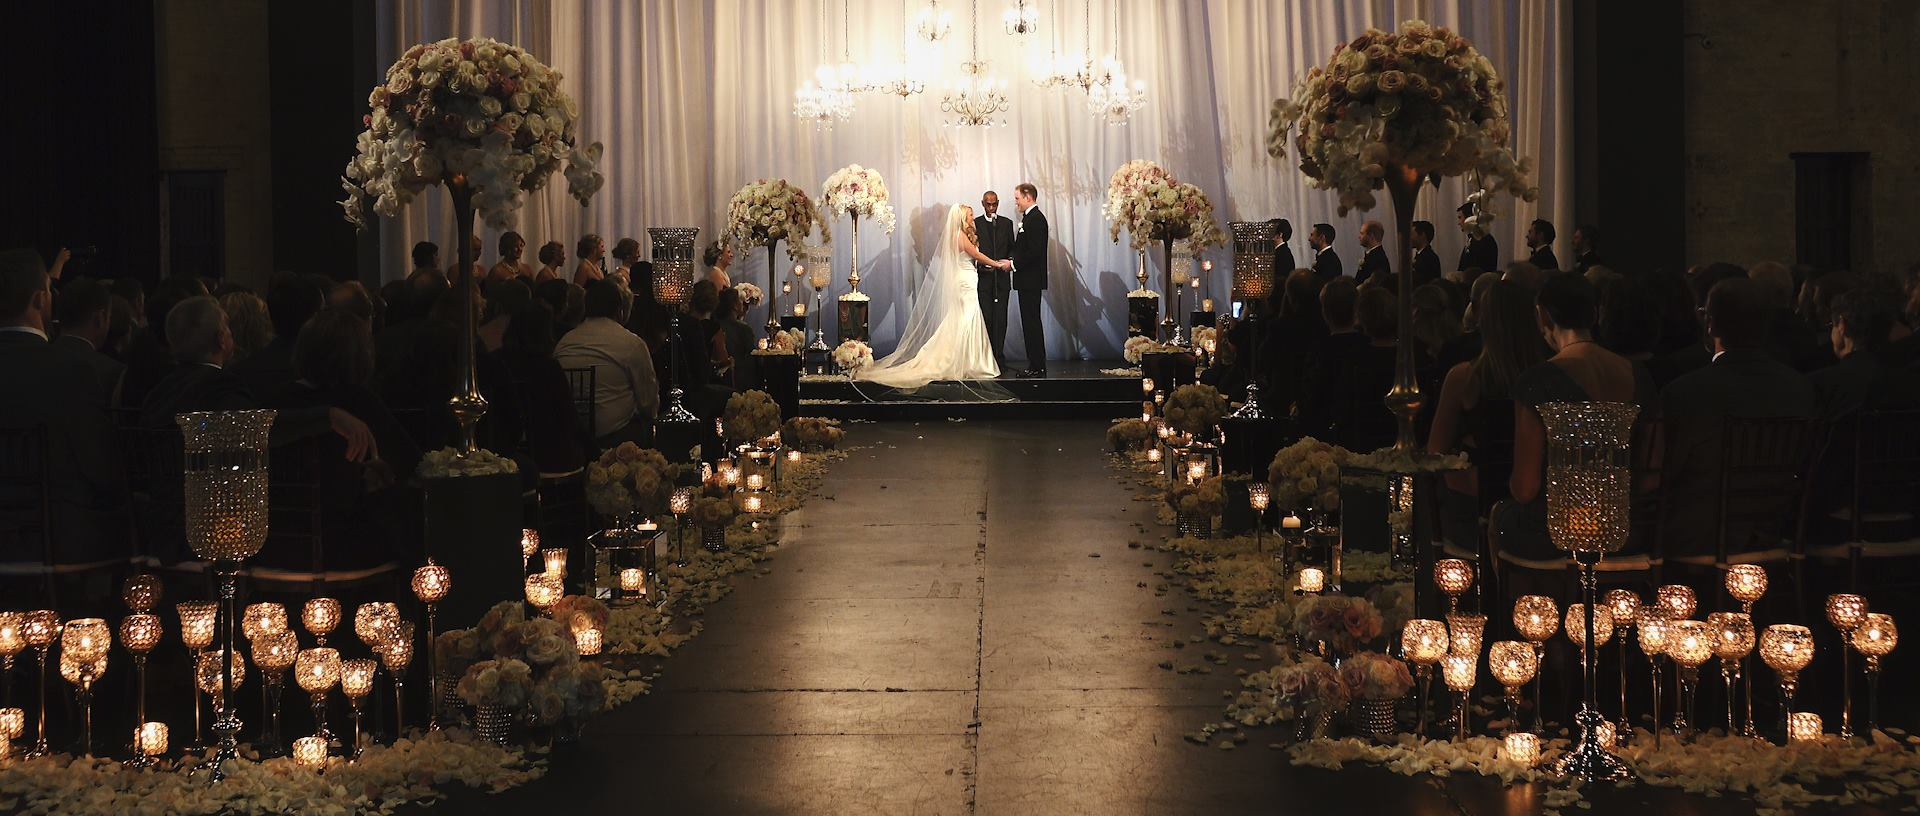 Wedding Videographer Filming In Minneapolis And Beyond